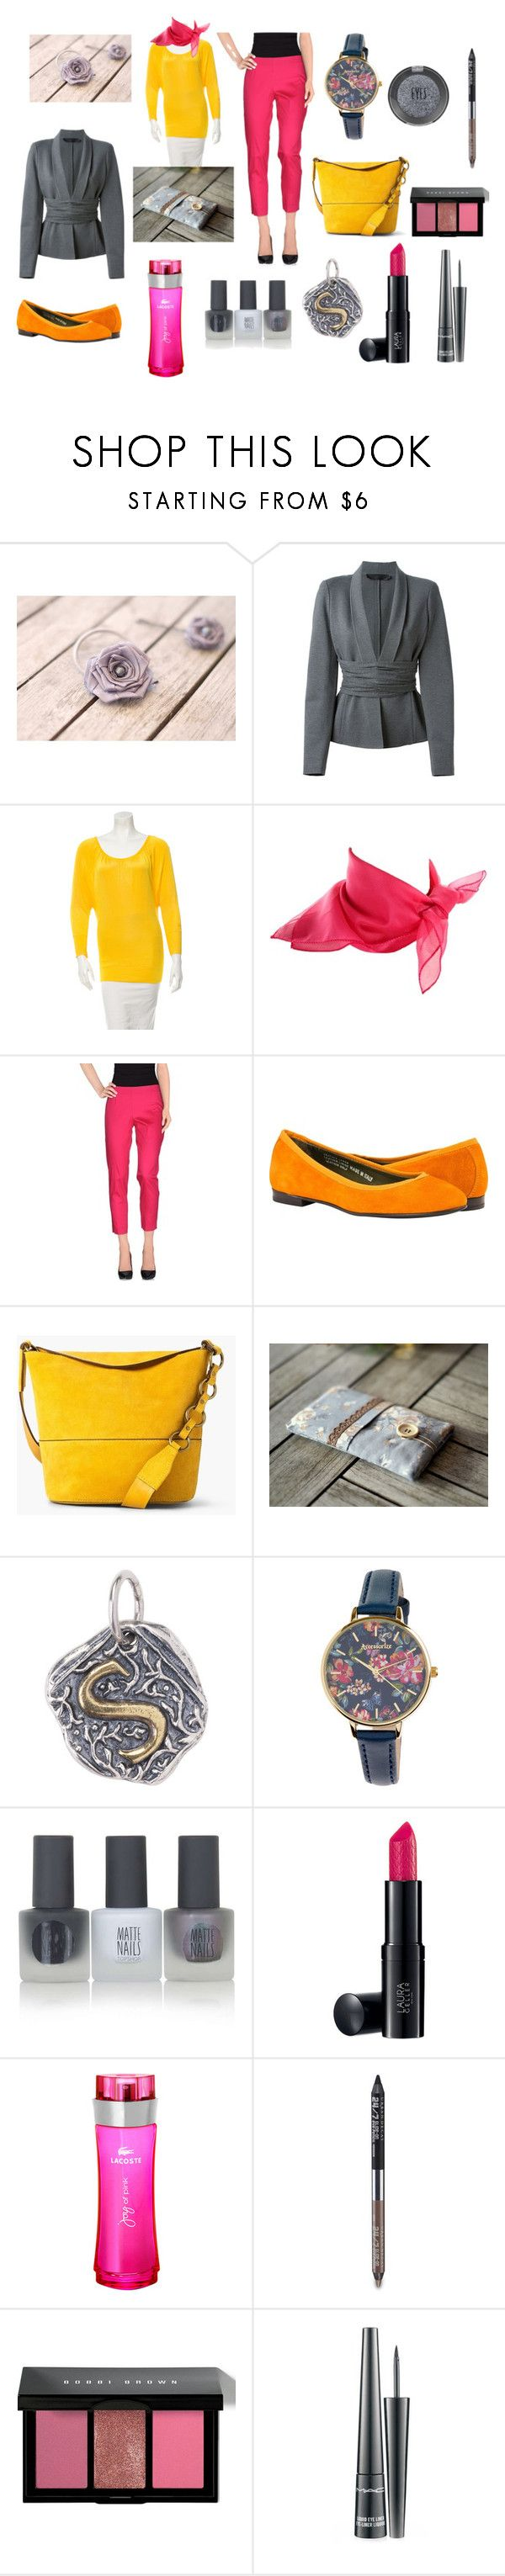 """""""Gray, Yellow and Fuchsia Collection,"""" by nataly-germany on Polyvore featuring Donna Karan, Alice + Olivia, MANGO, Accessorize, Topshop, Laura Geller, Lacoste, Urban Decay, Bobbi Brown Cosmetics and MAC Cosmetics"""